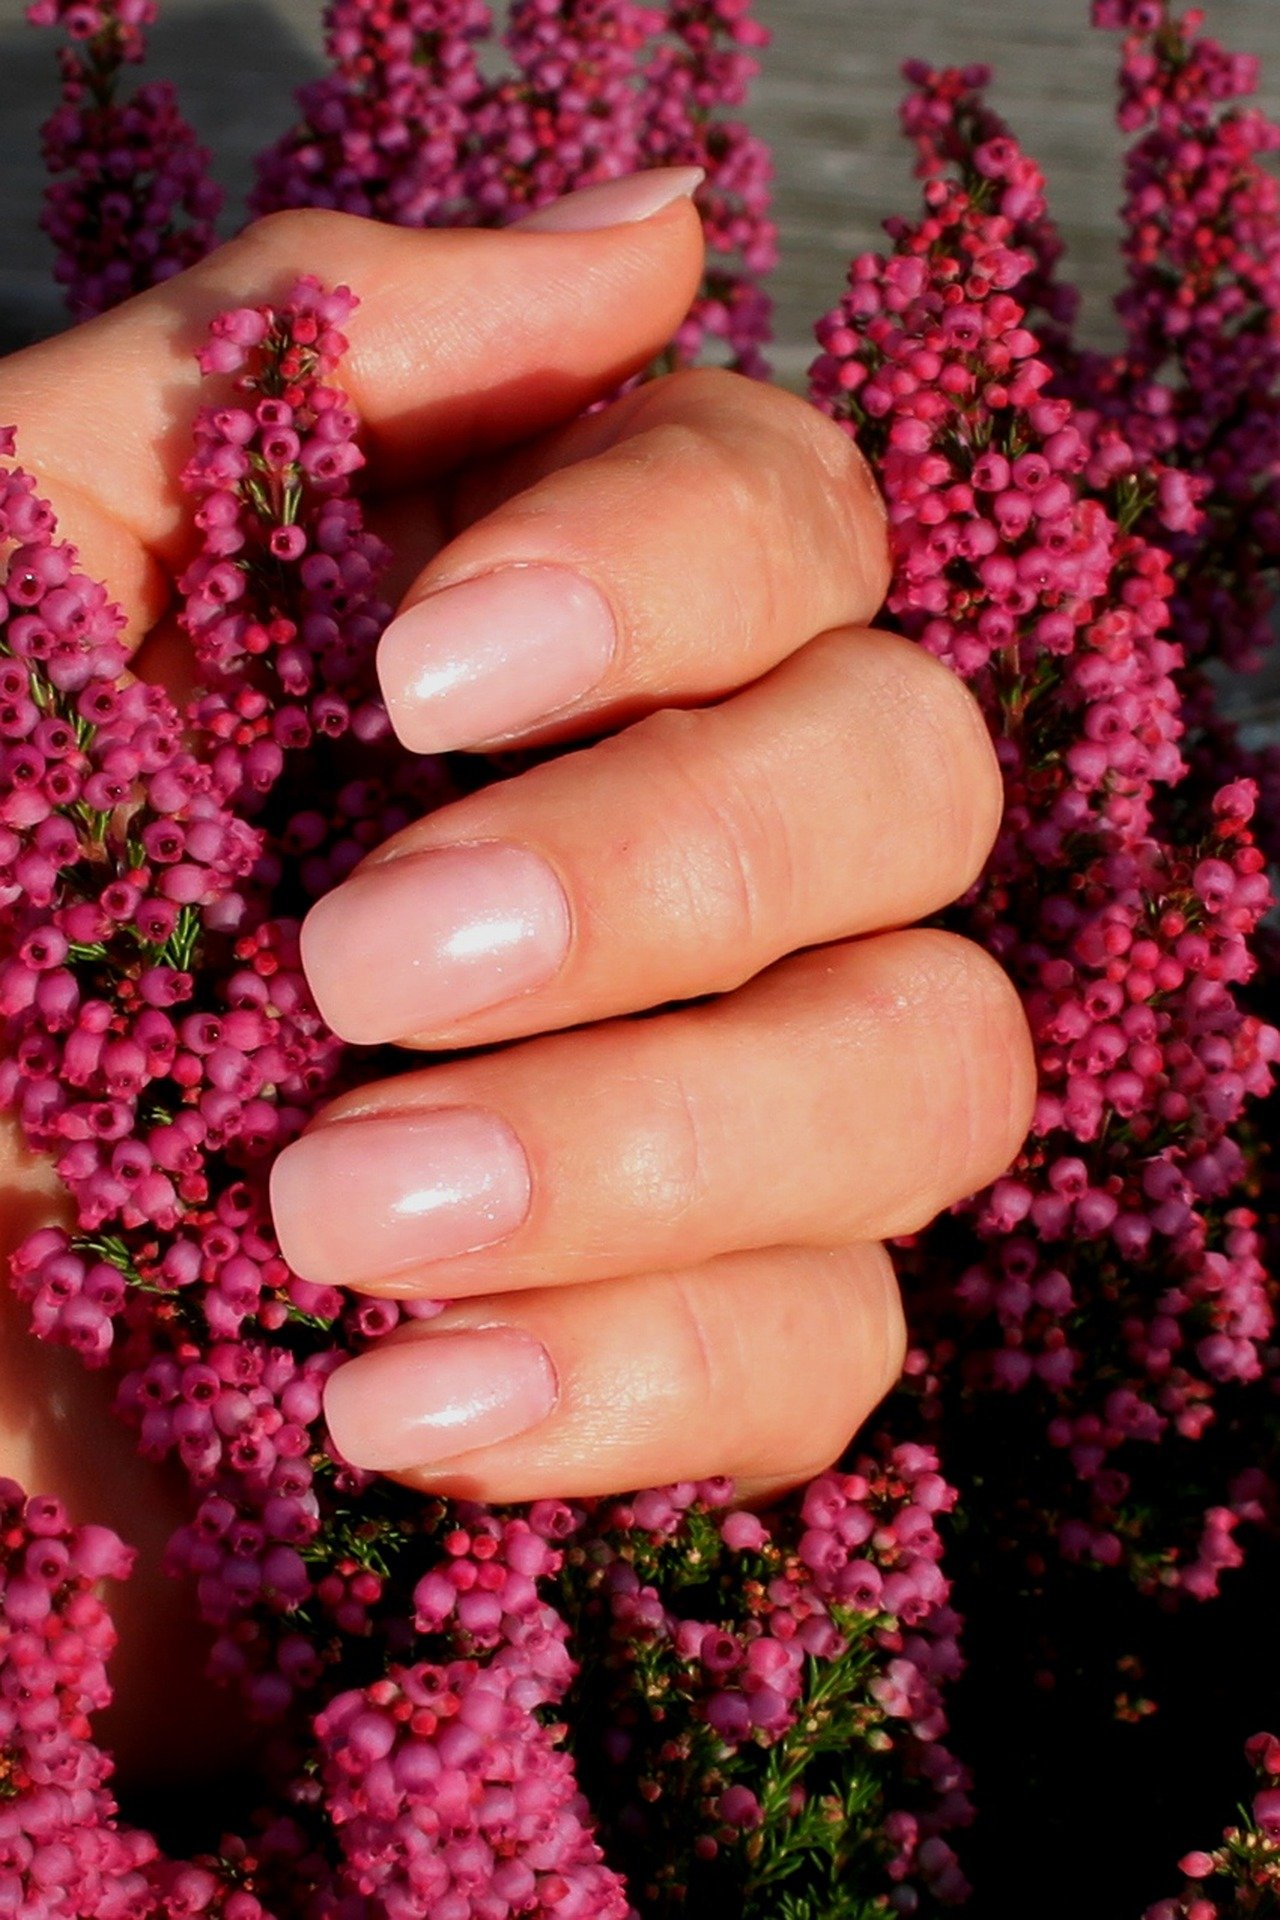 Close up of a woman folding a flower with manicured nails. For use on the Manicure Course page.